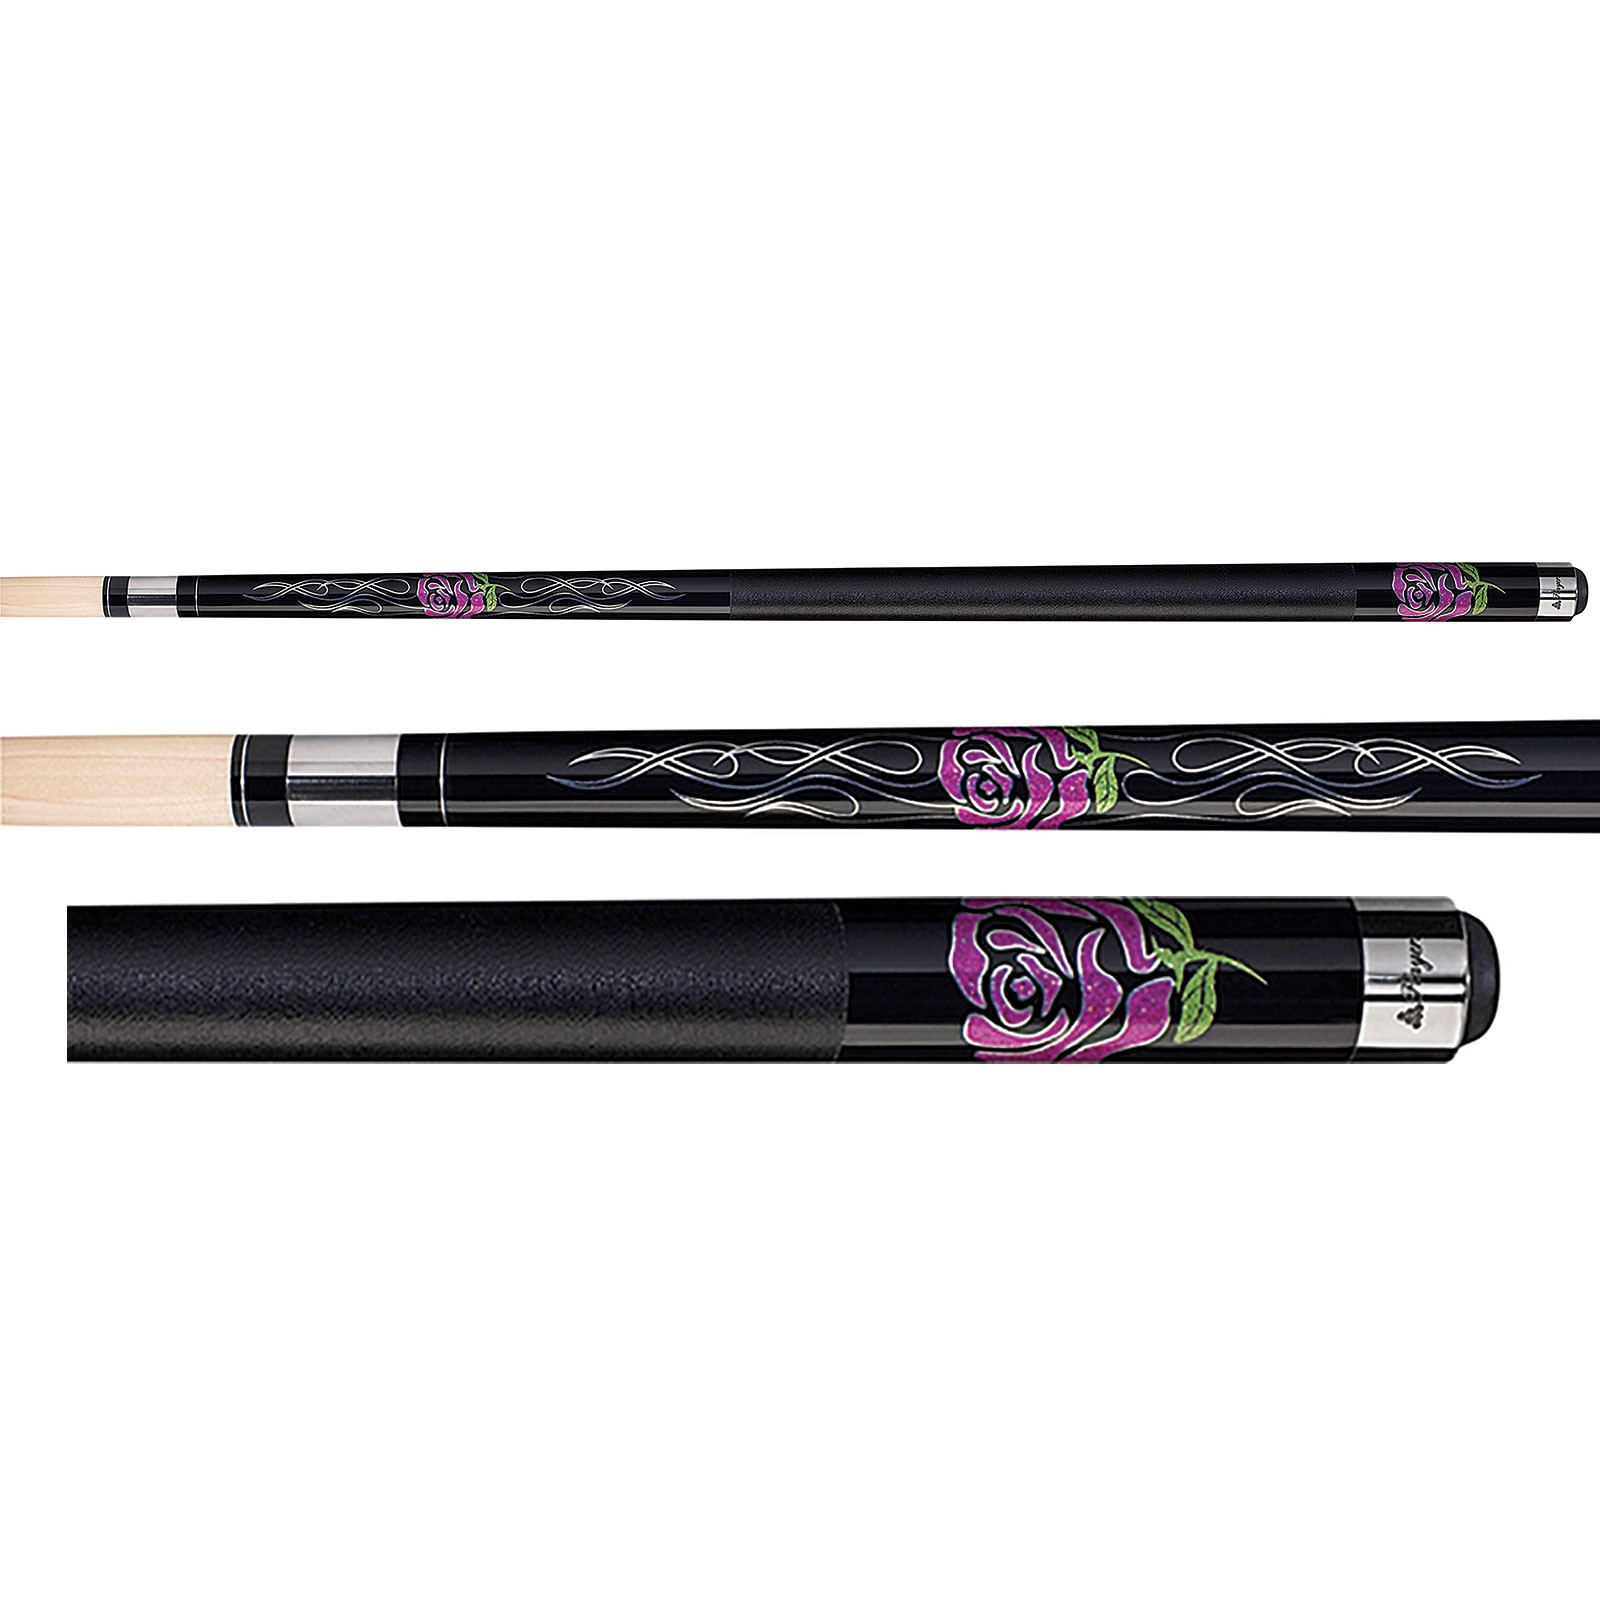 Players F-2770 Flirt Chic Pink Rose Women's Pool Cue Stick